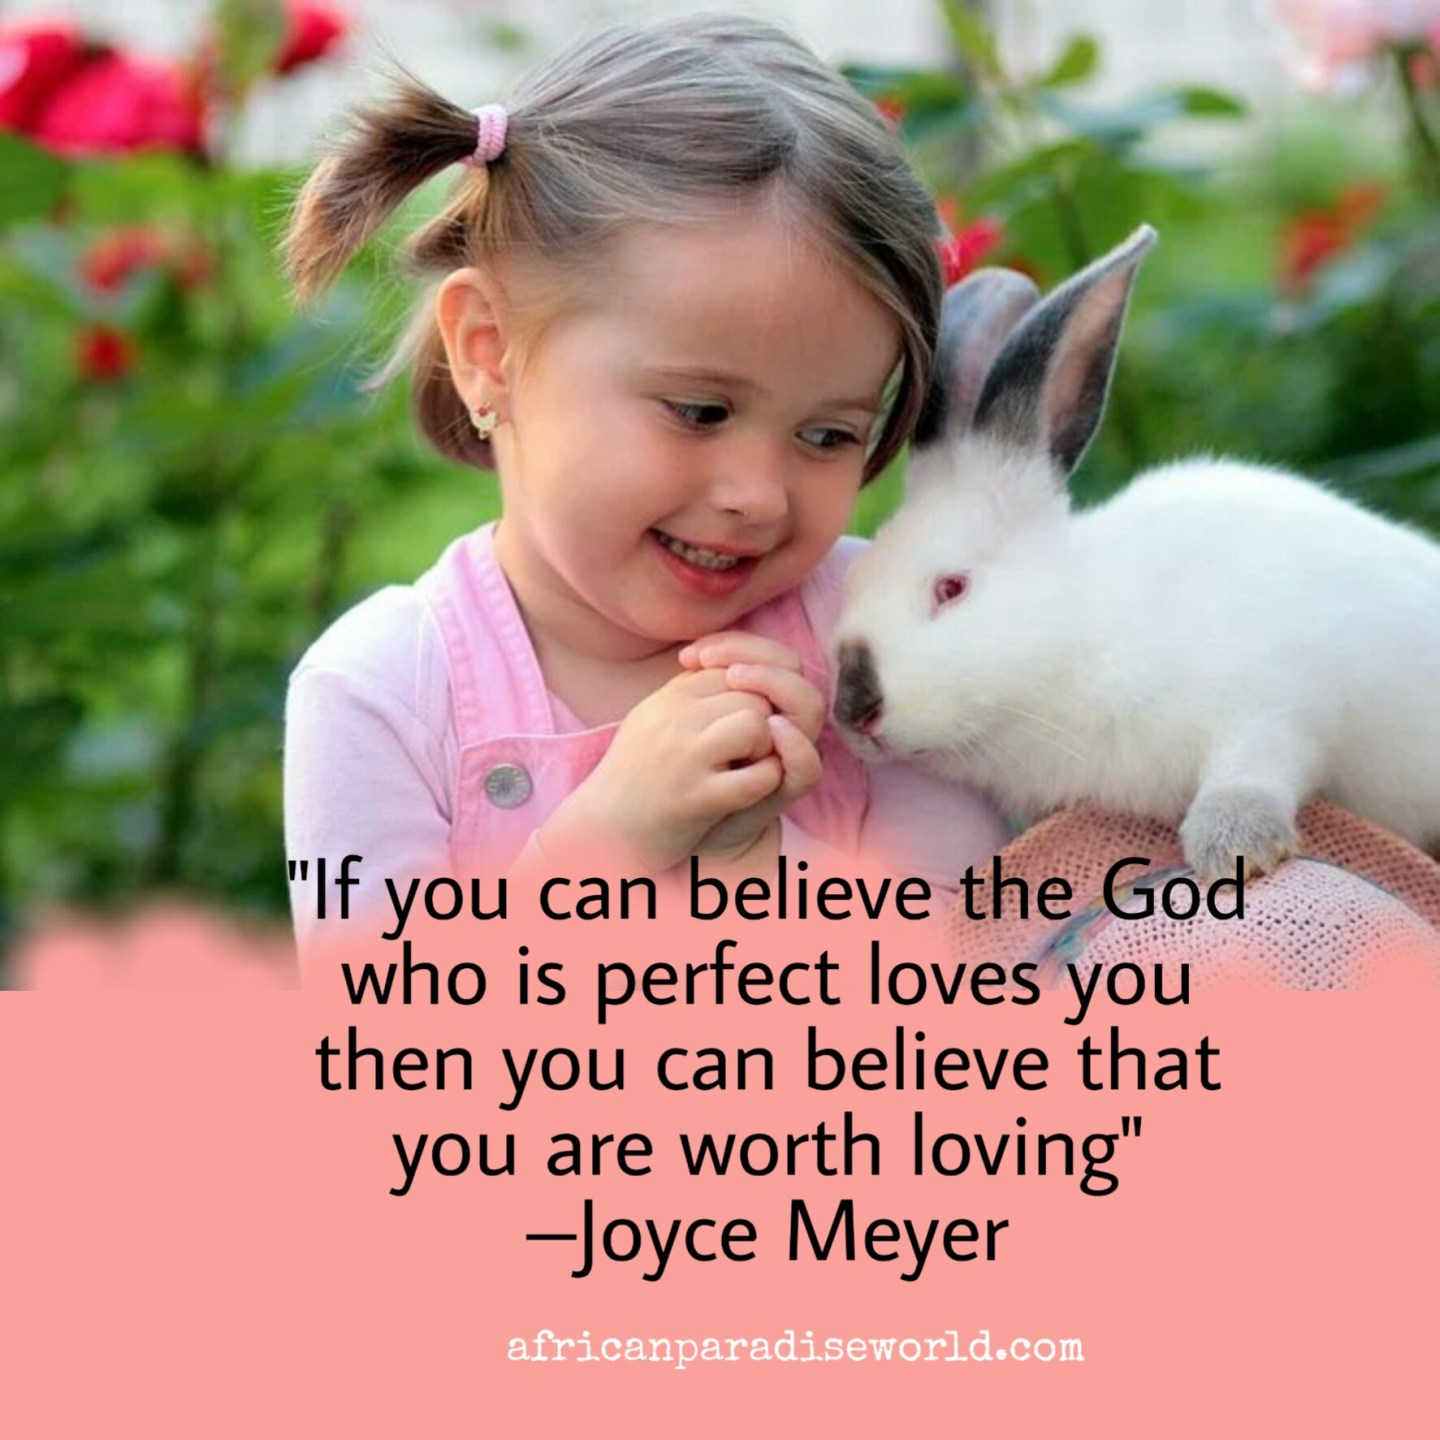 Quotes about God from Joyce Meyer